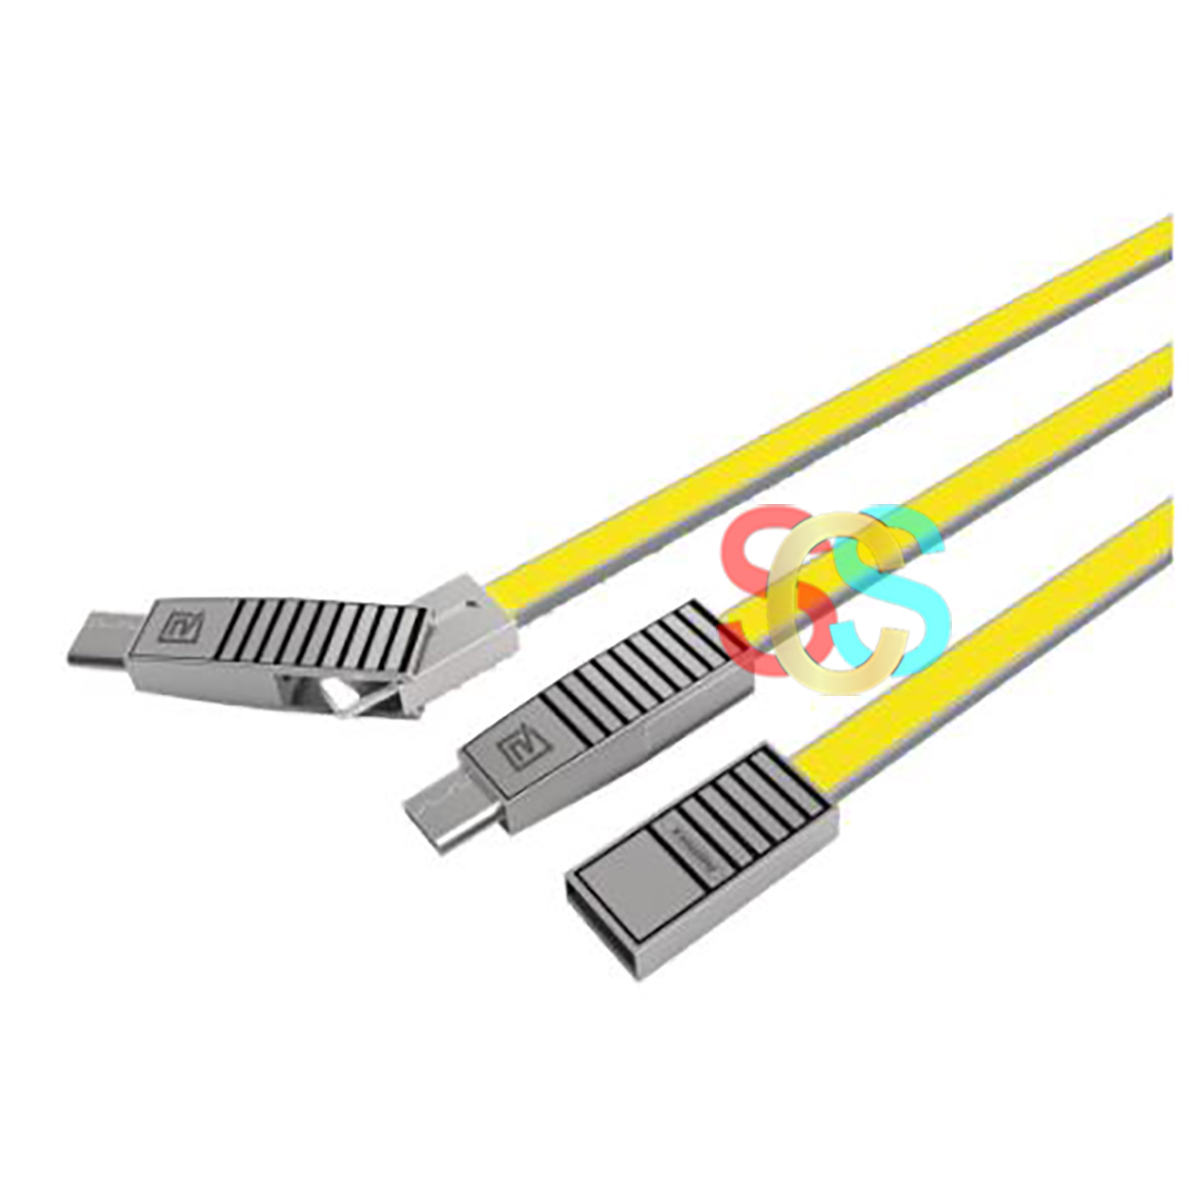 USB Male to Micro USB + Lightning + Type-C, 1 Meter, Yellow Data Cable